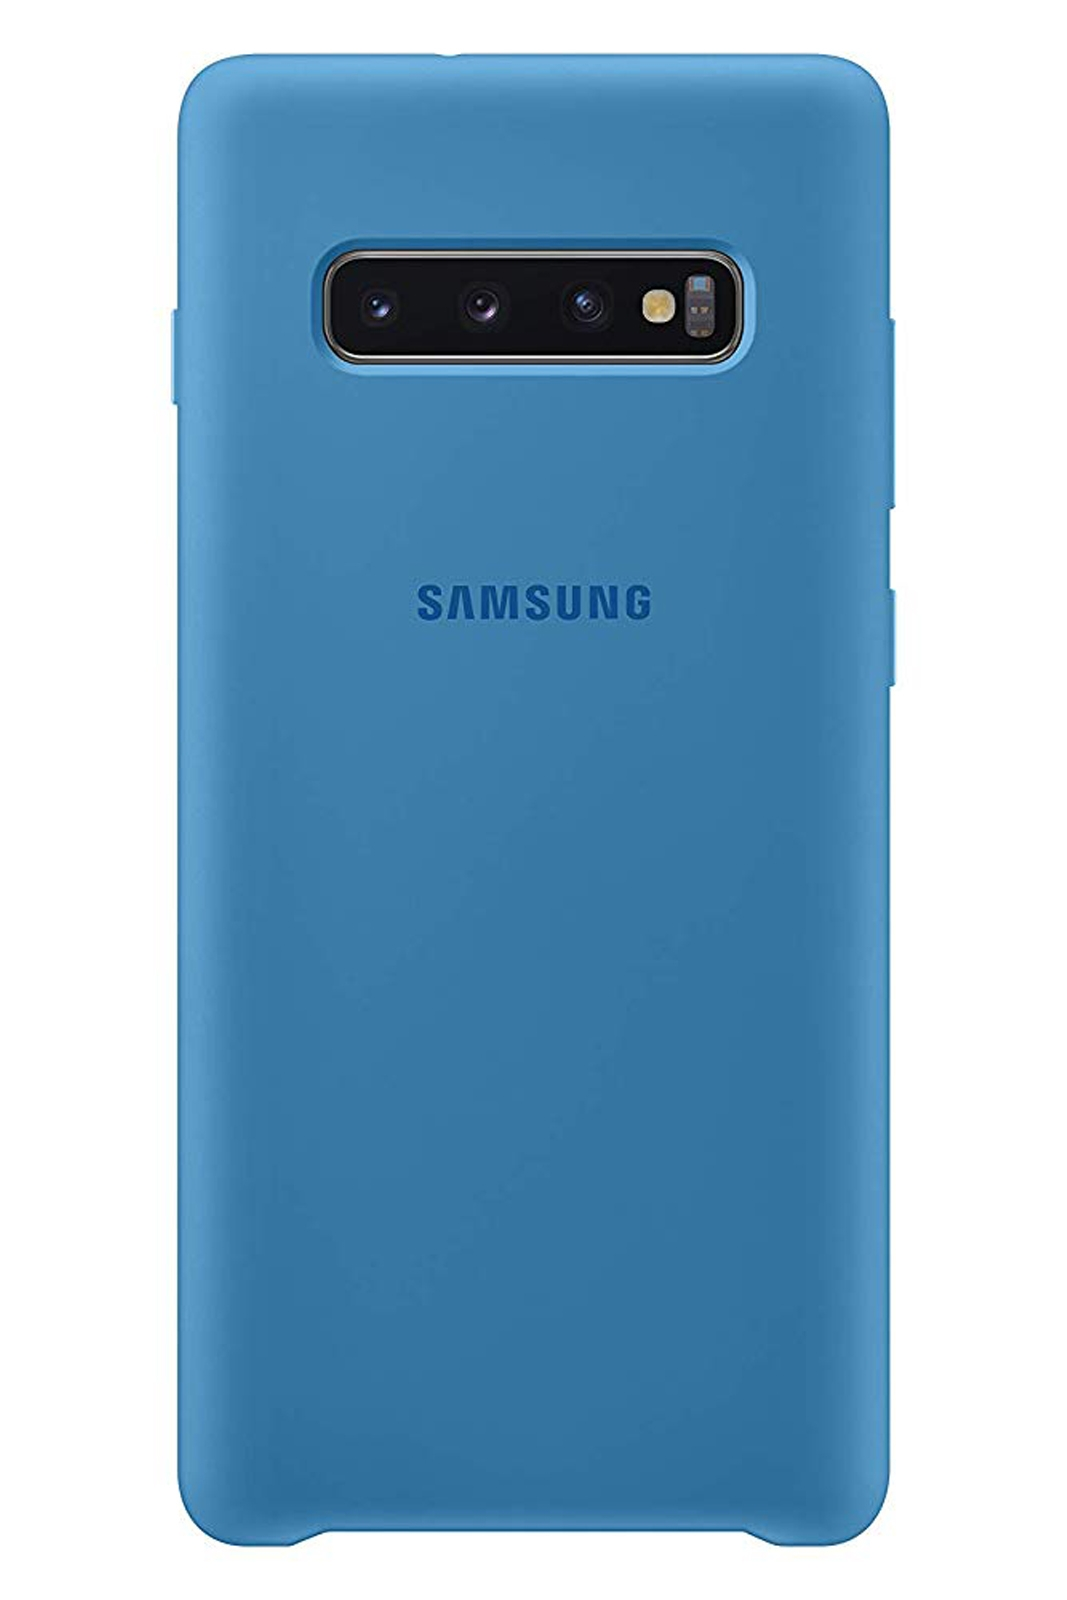 811408589ab Official Samsung Galaxy S10 Plus Blue Silicone Cover / Case - EF ...